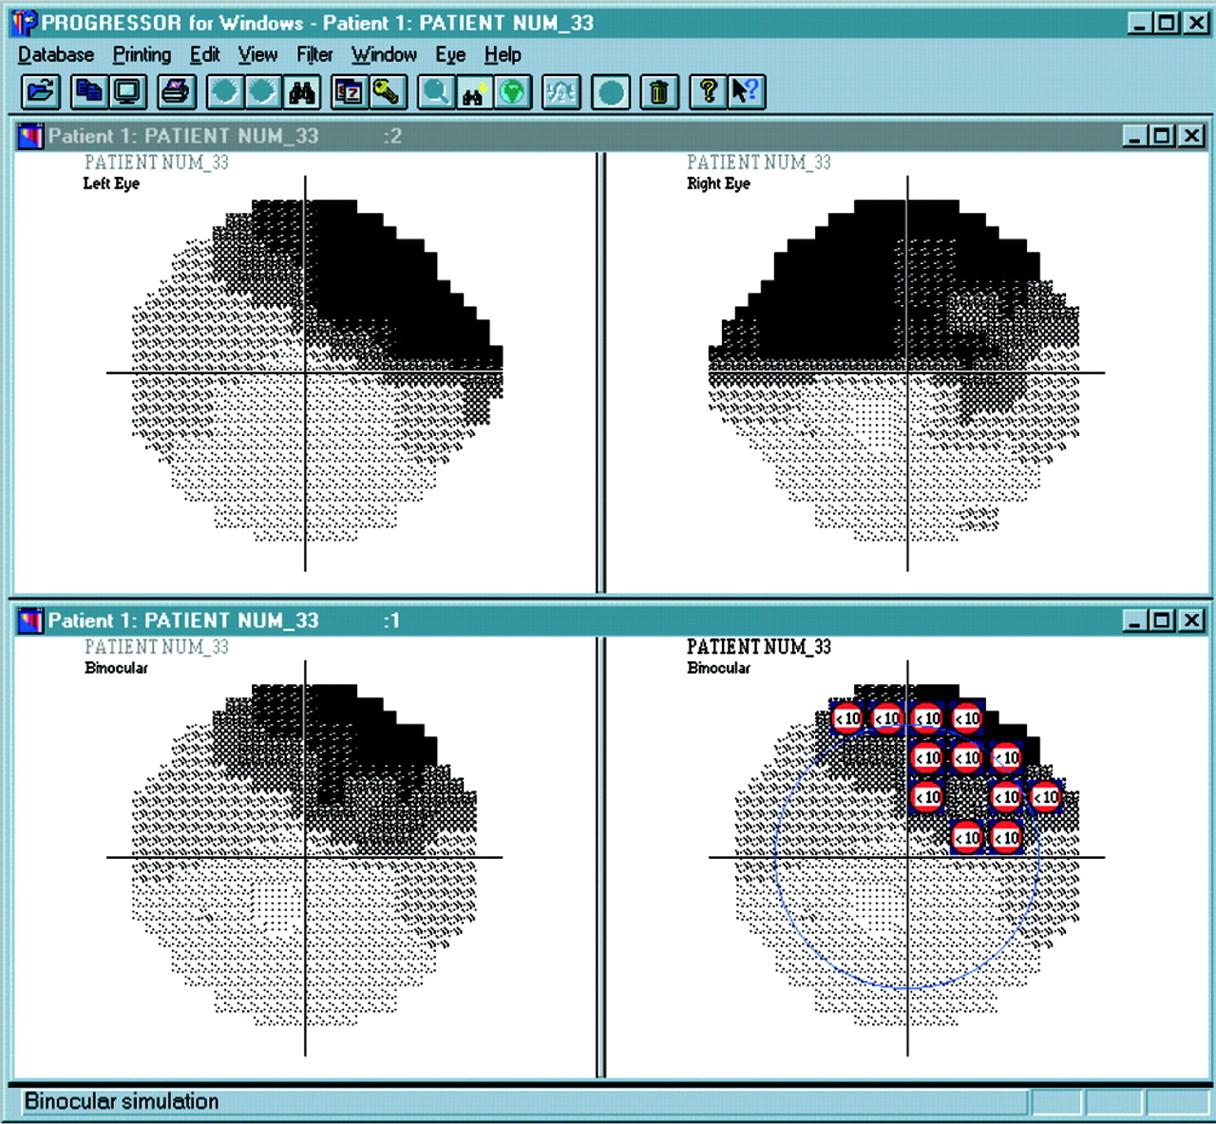 a practical approach to measuring the visual field